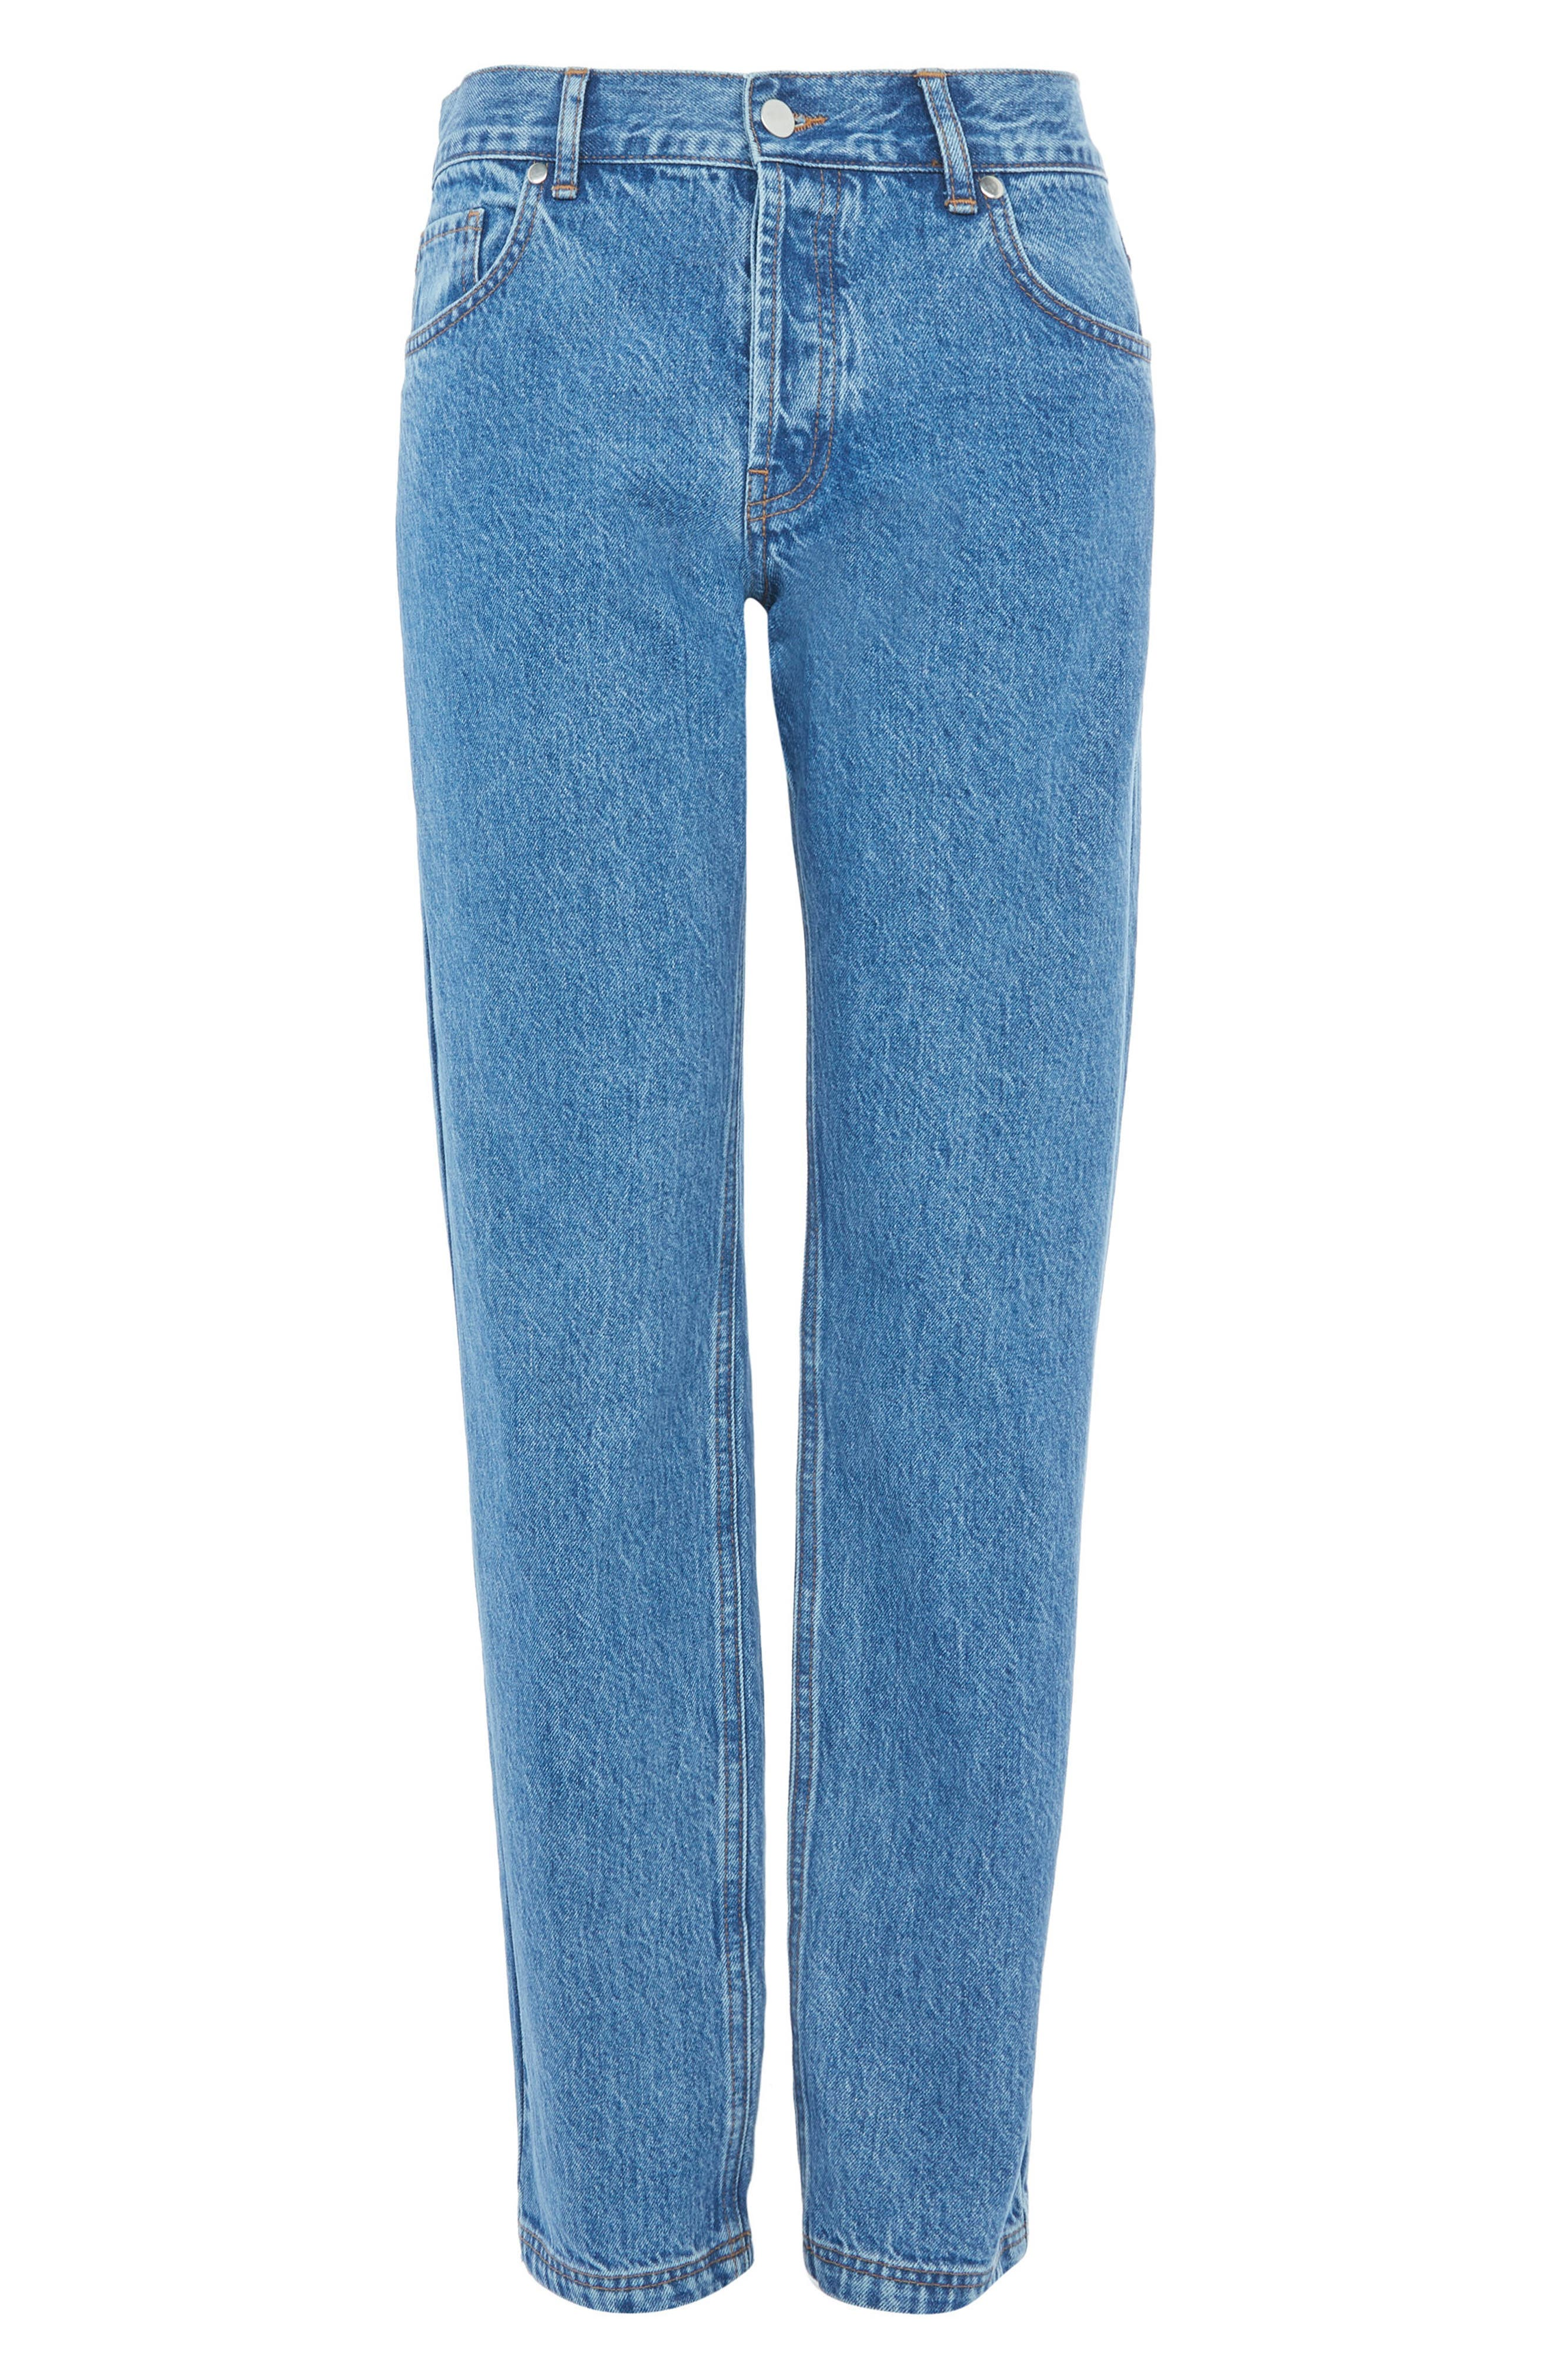 Topshop Medium Wash Straight Leg Jeans